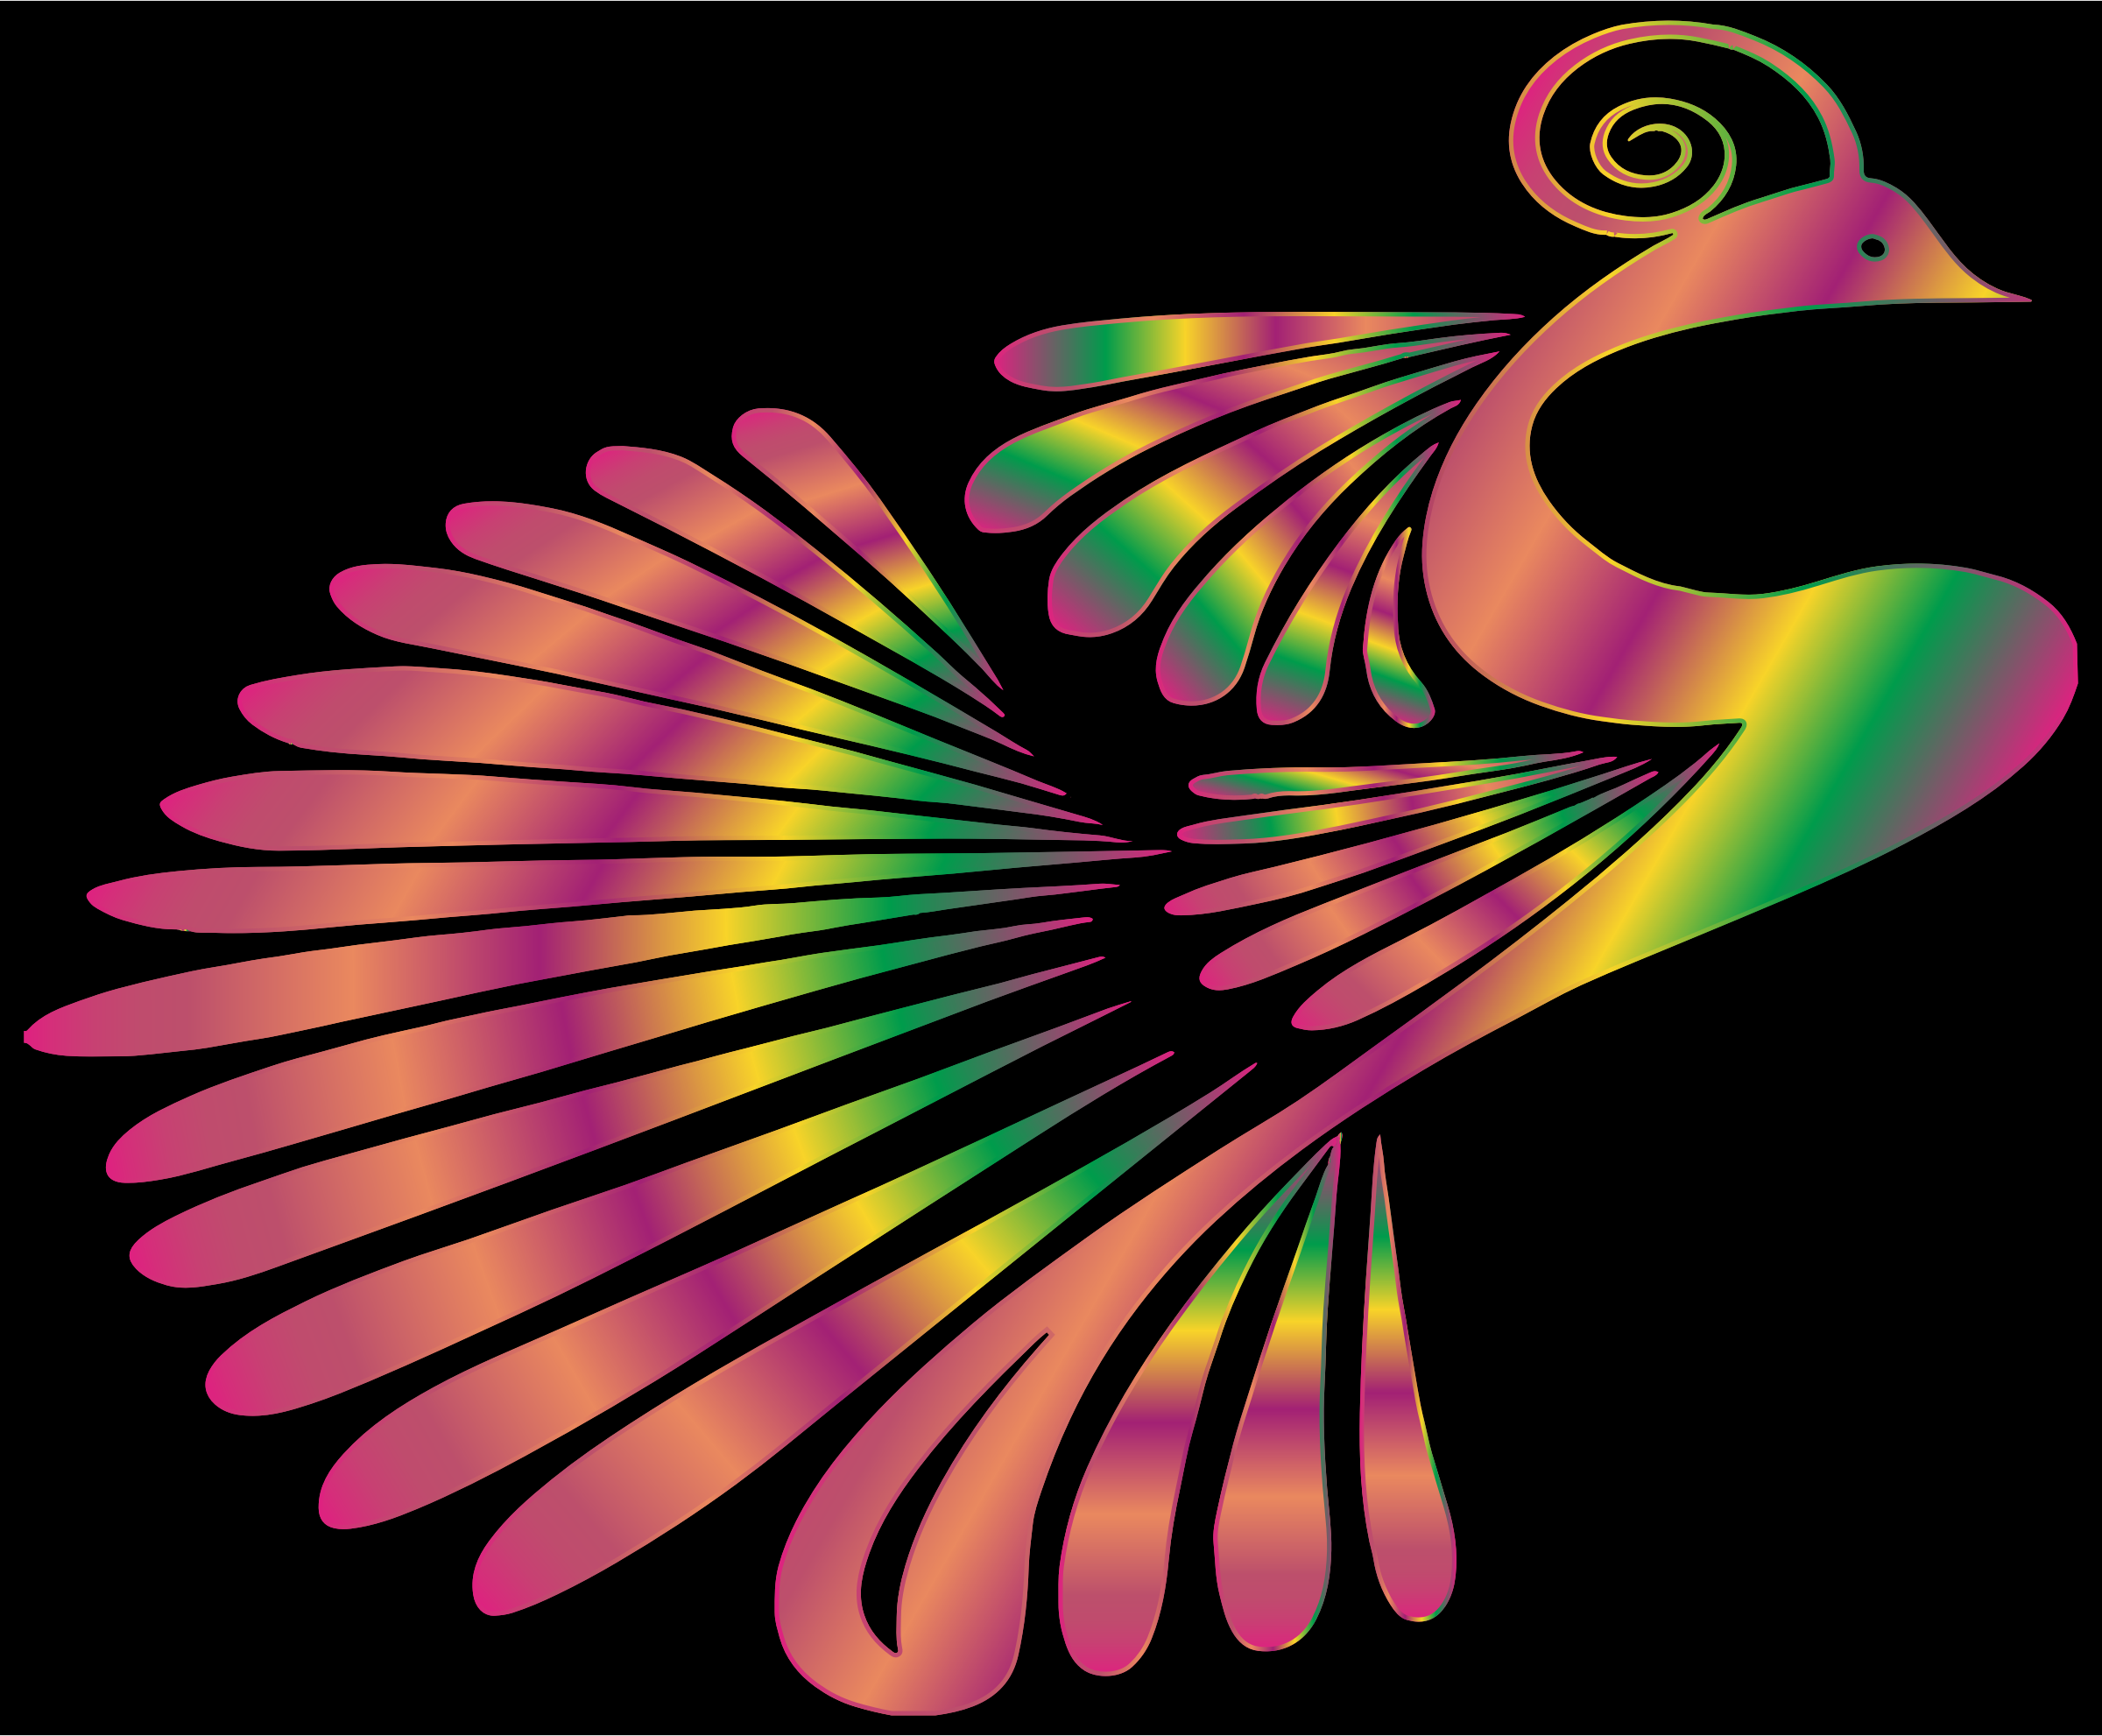 Colorful Stylized Peacock 11 by GDJ